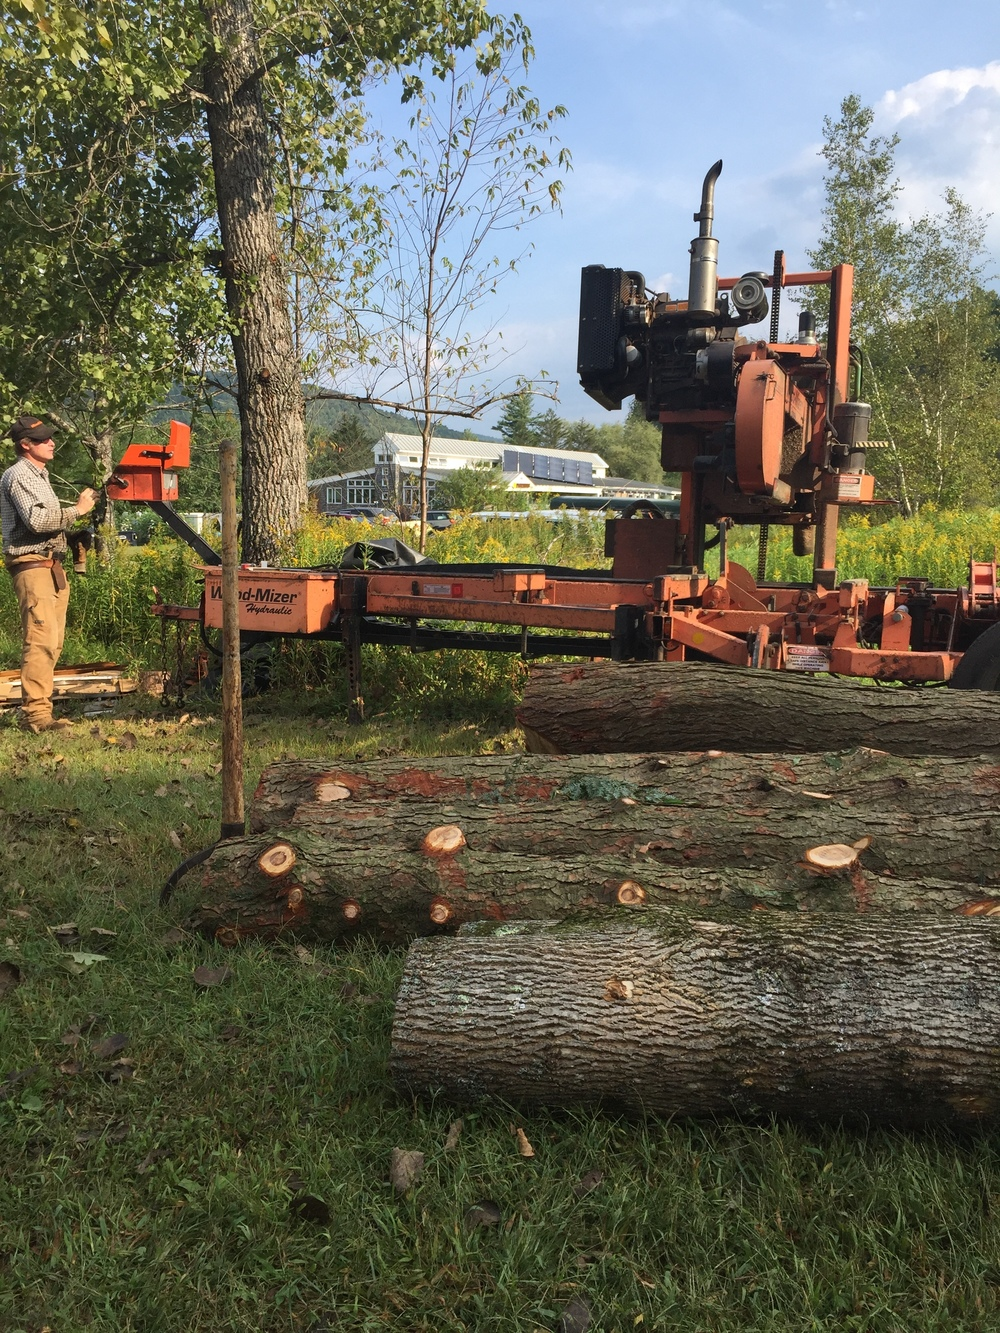 Now the logs are pulled down, it's time to mill them into lumber.